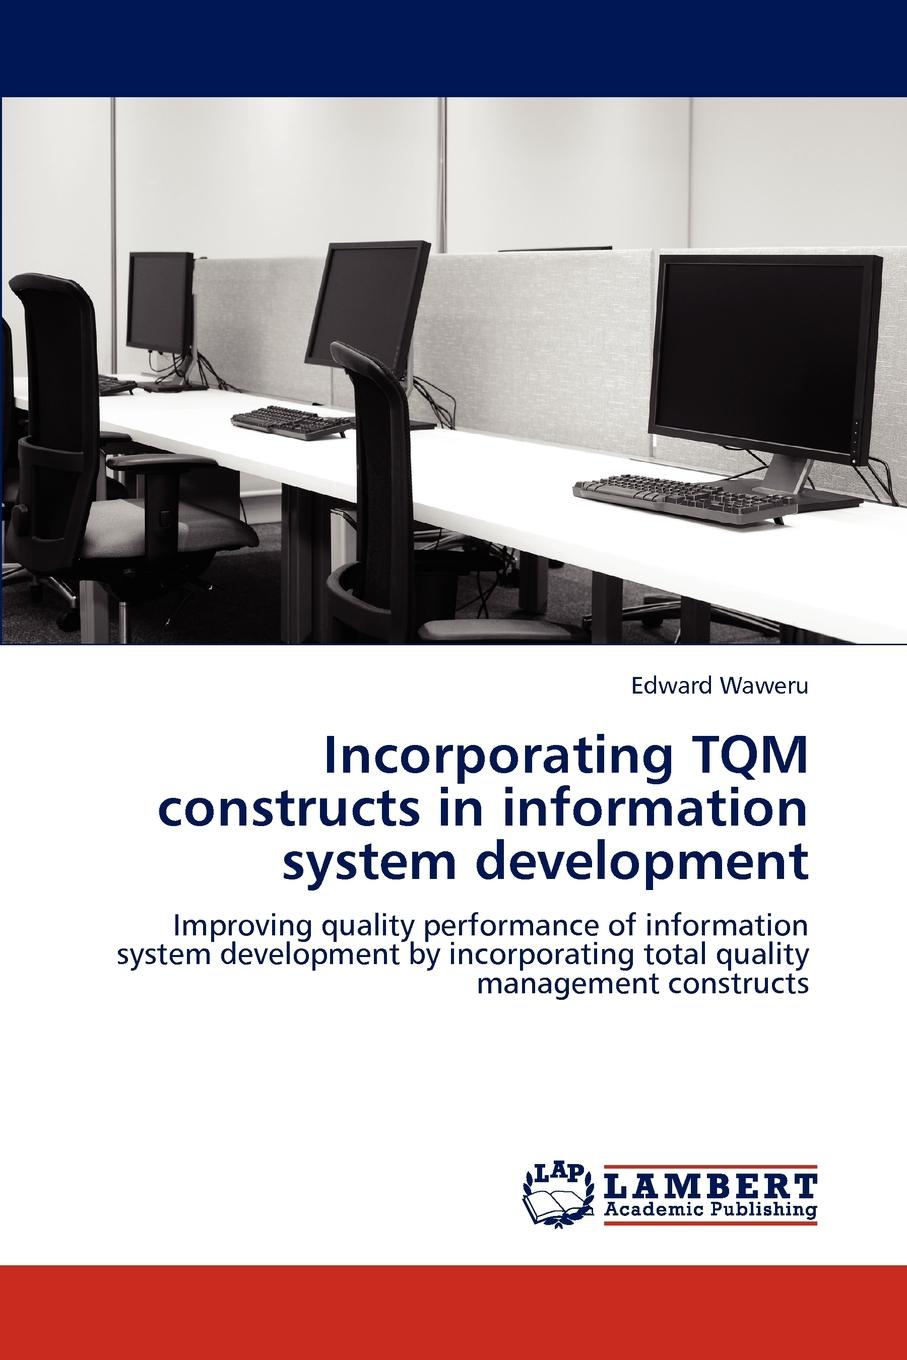 Edward Waweru Incorporating TQM constructs in information system development цена